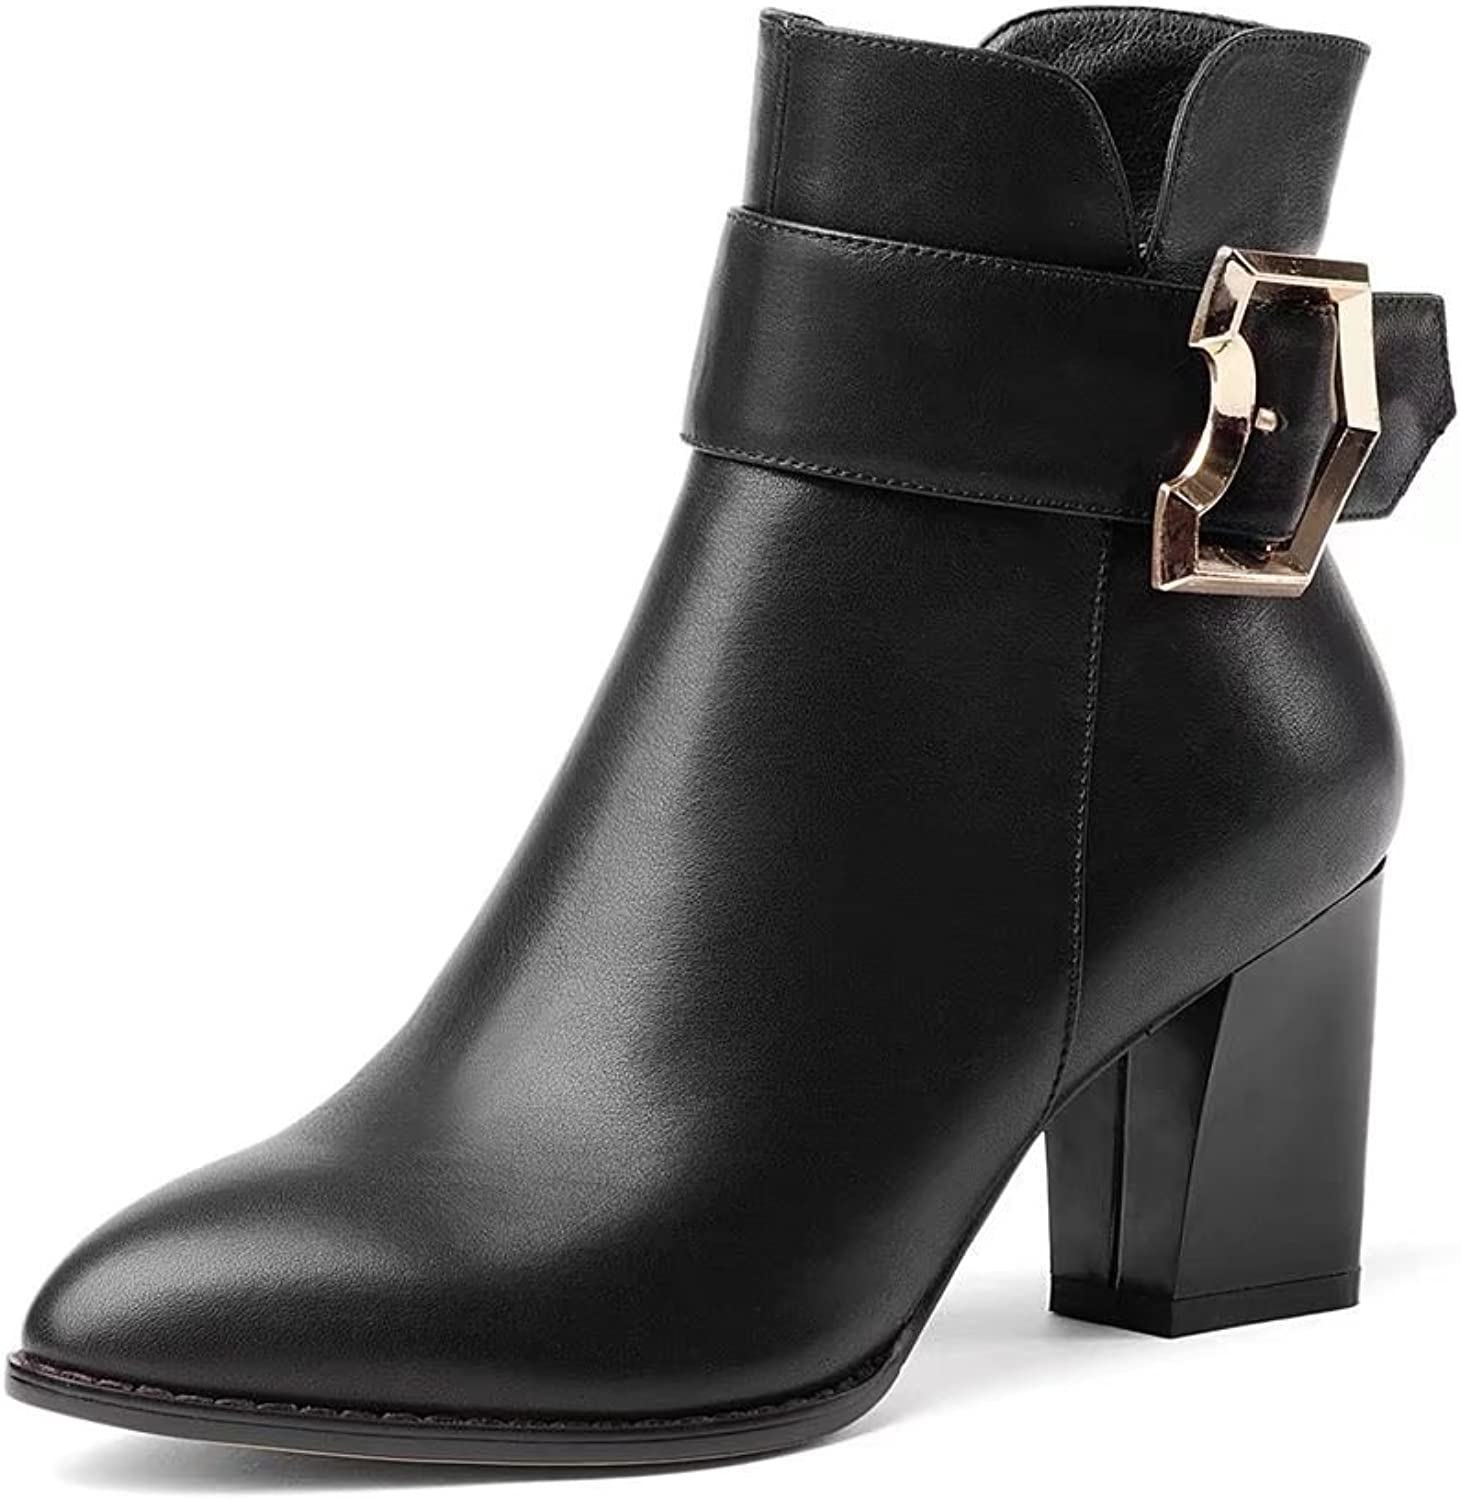 VIMISAOI Women's Black Fashion Chunky Heel Pointed Toe Genuine Leather Buckle Zipper Ankle Boots